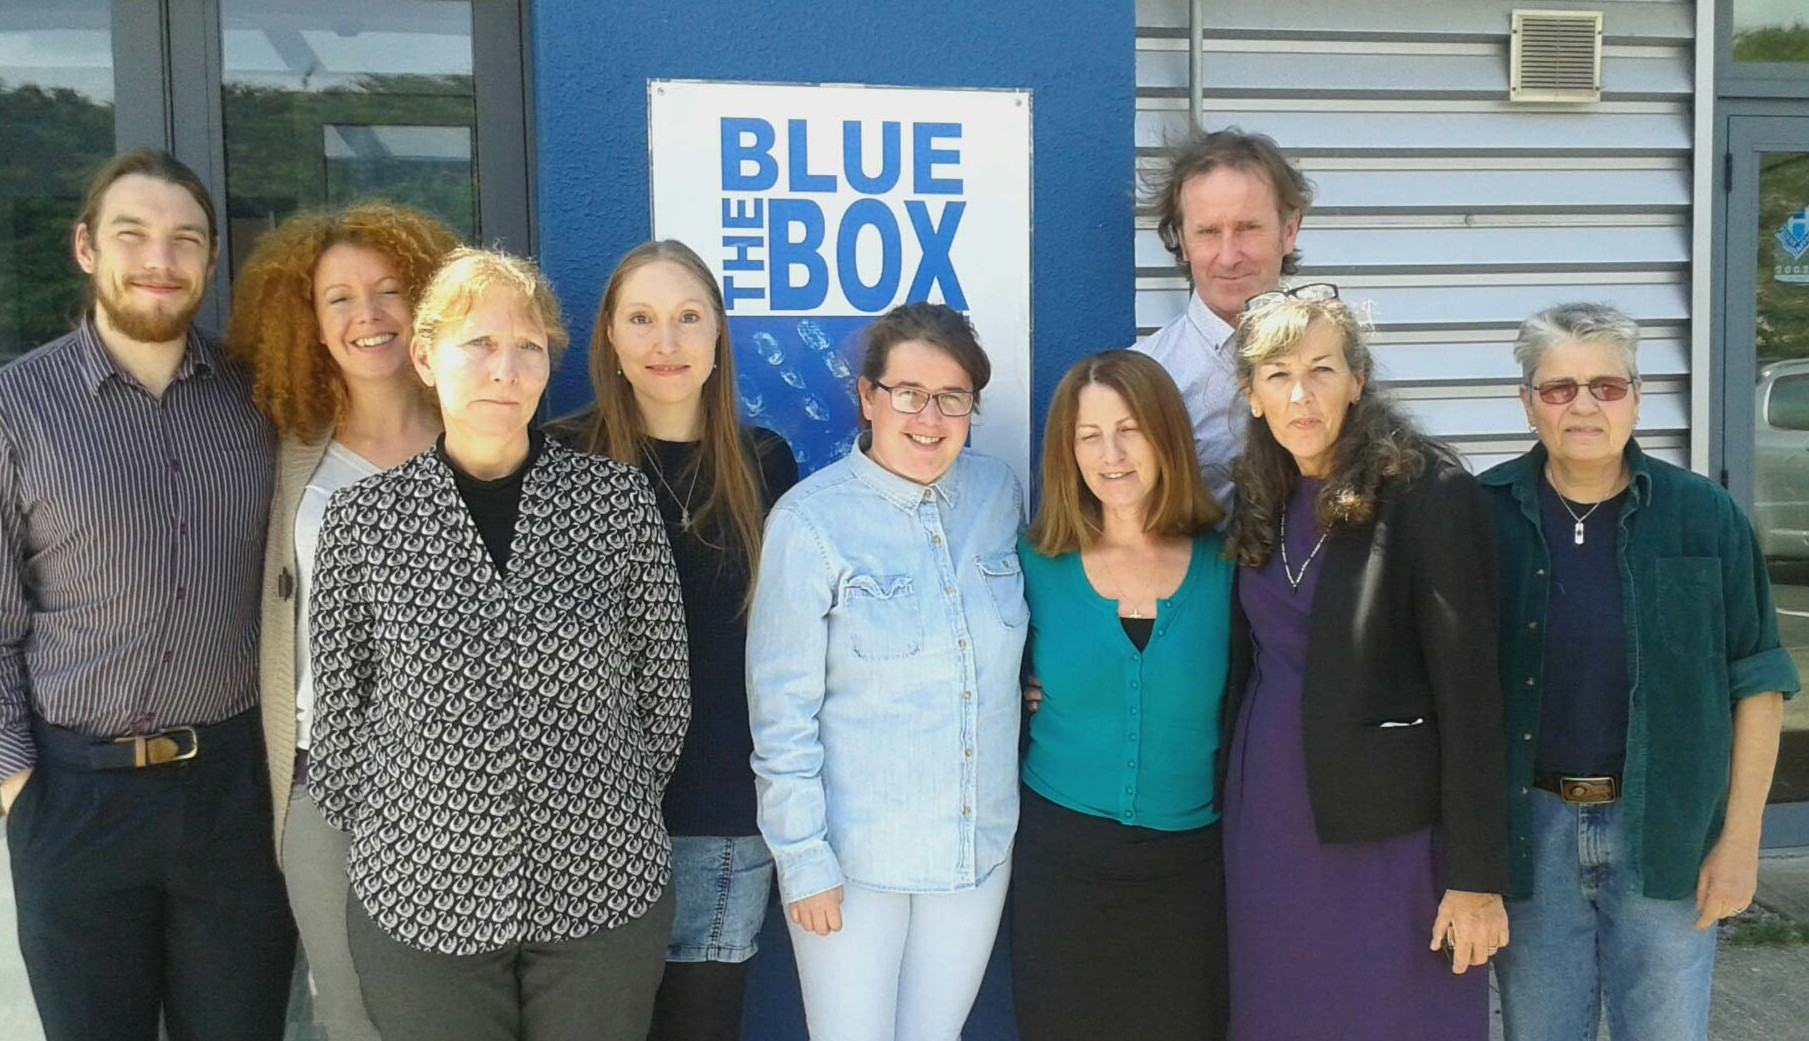 Lorna Byrne Blue Box charity fundraising event